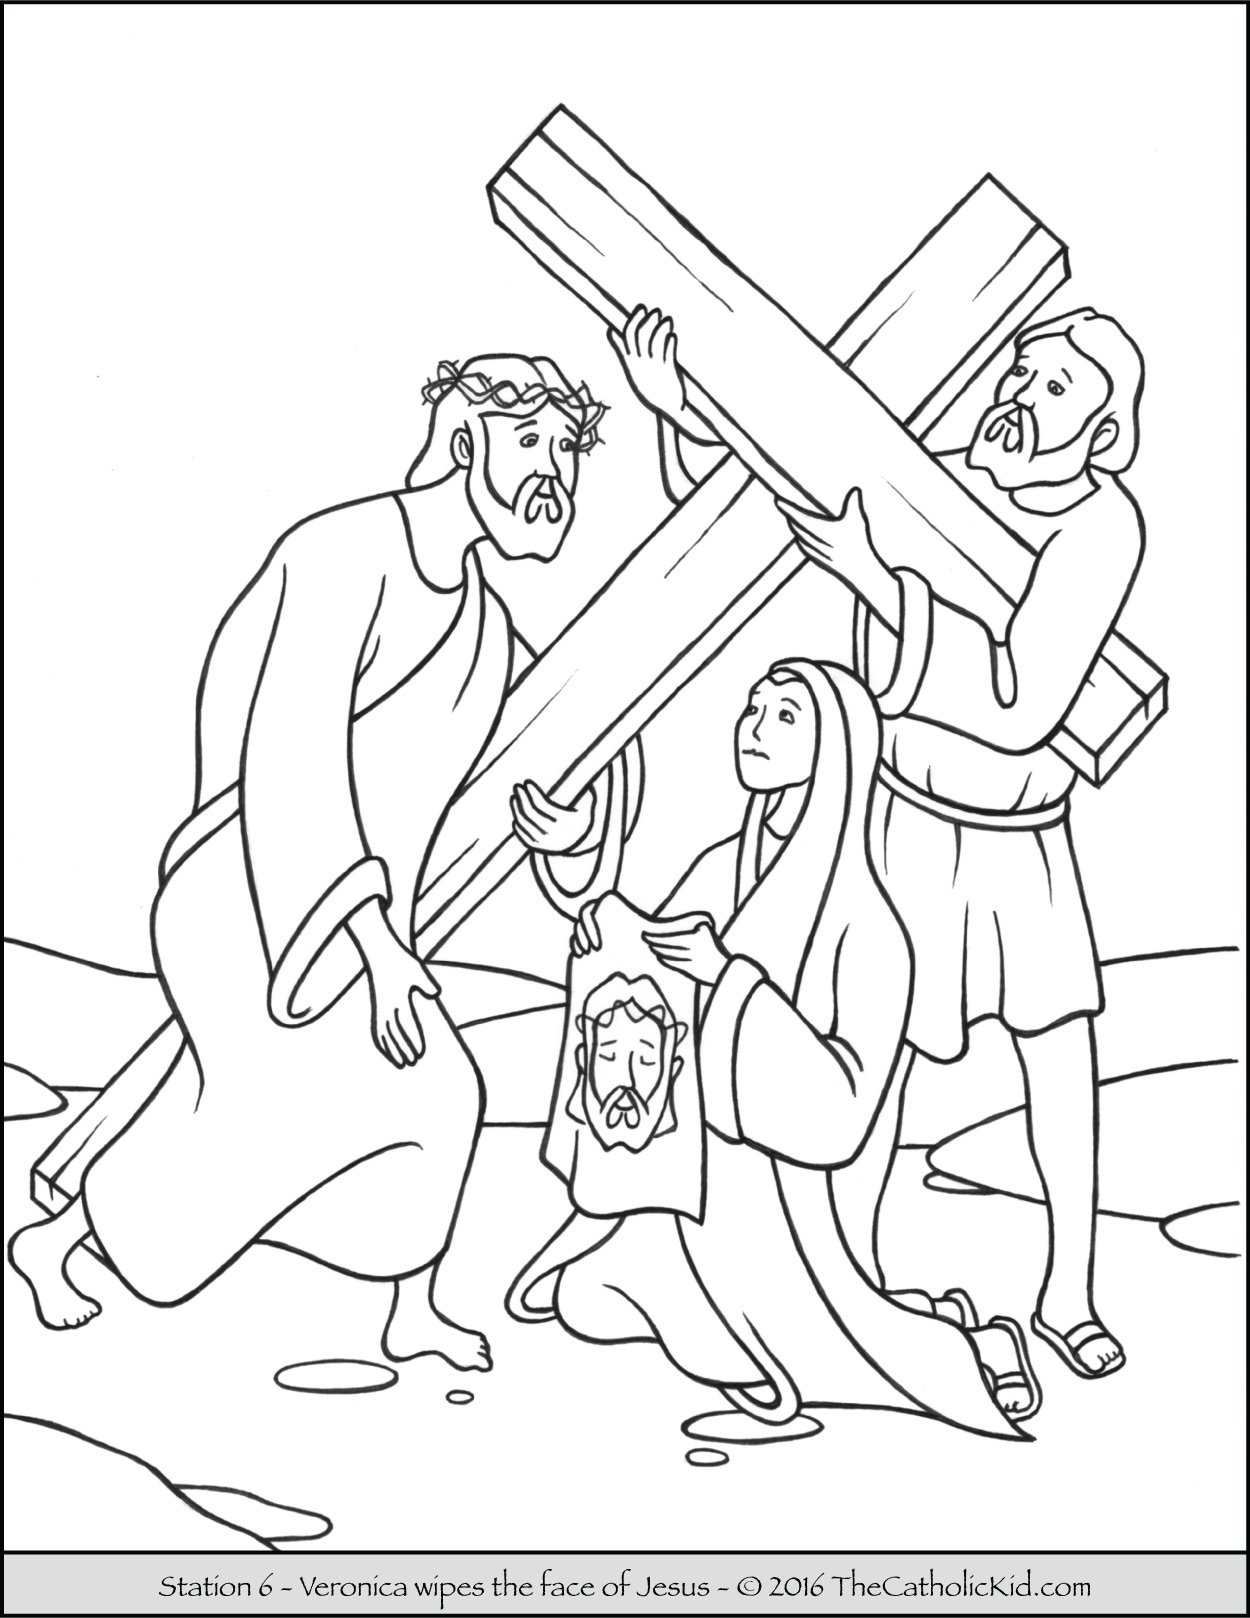 Stations Of The Cross Coloring Pages Pleasing Stations Of The Cross Coloring Pages  The Catholic Kid Decorating Inspiration